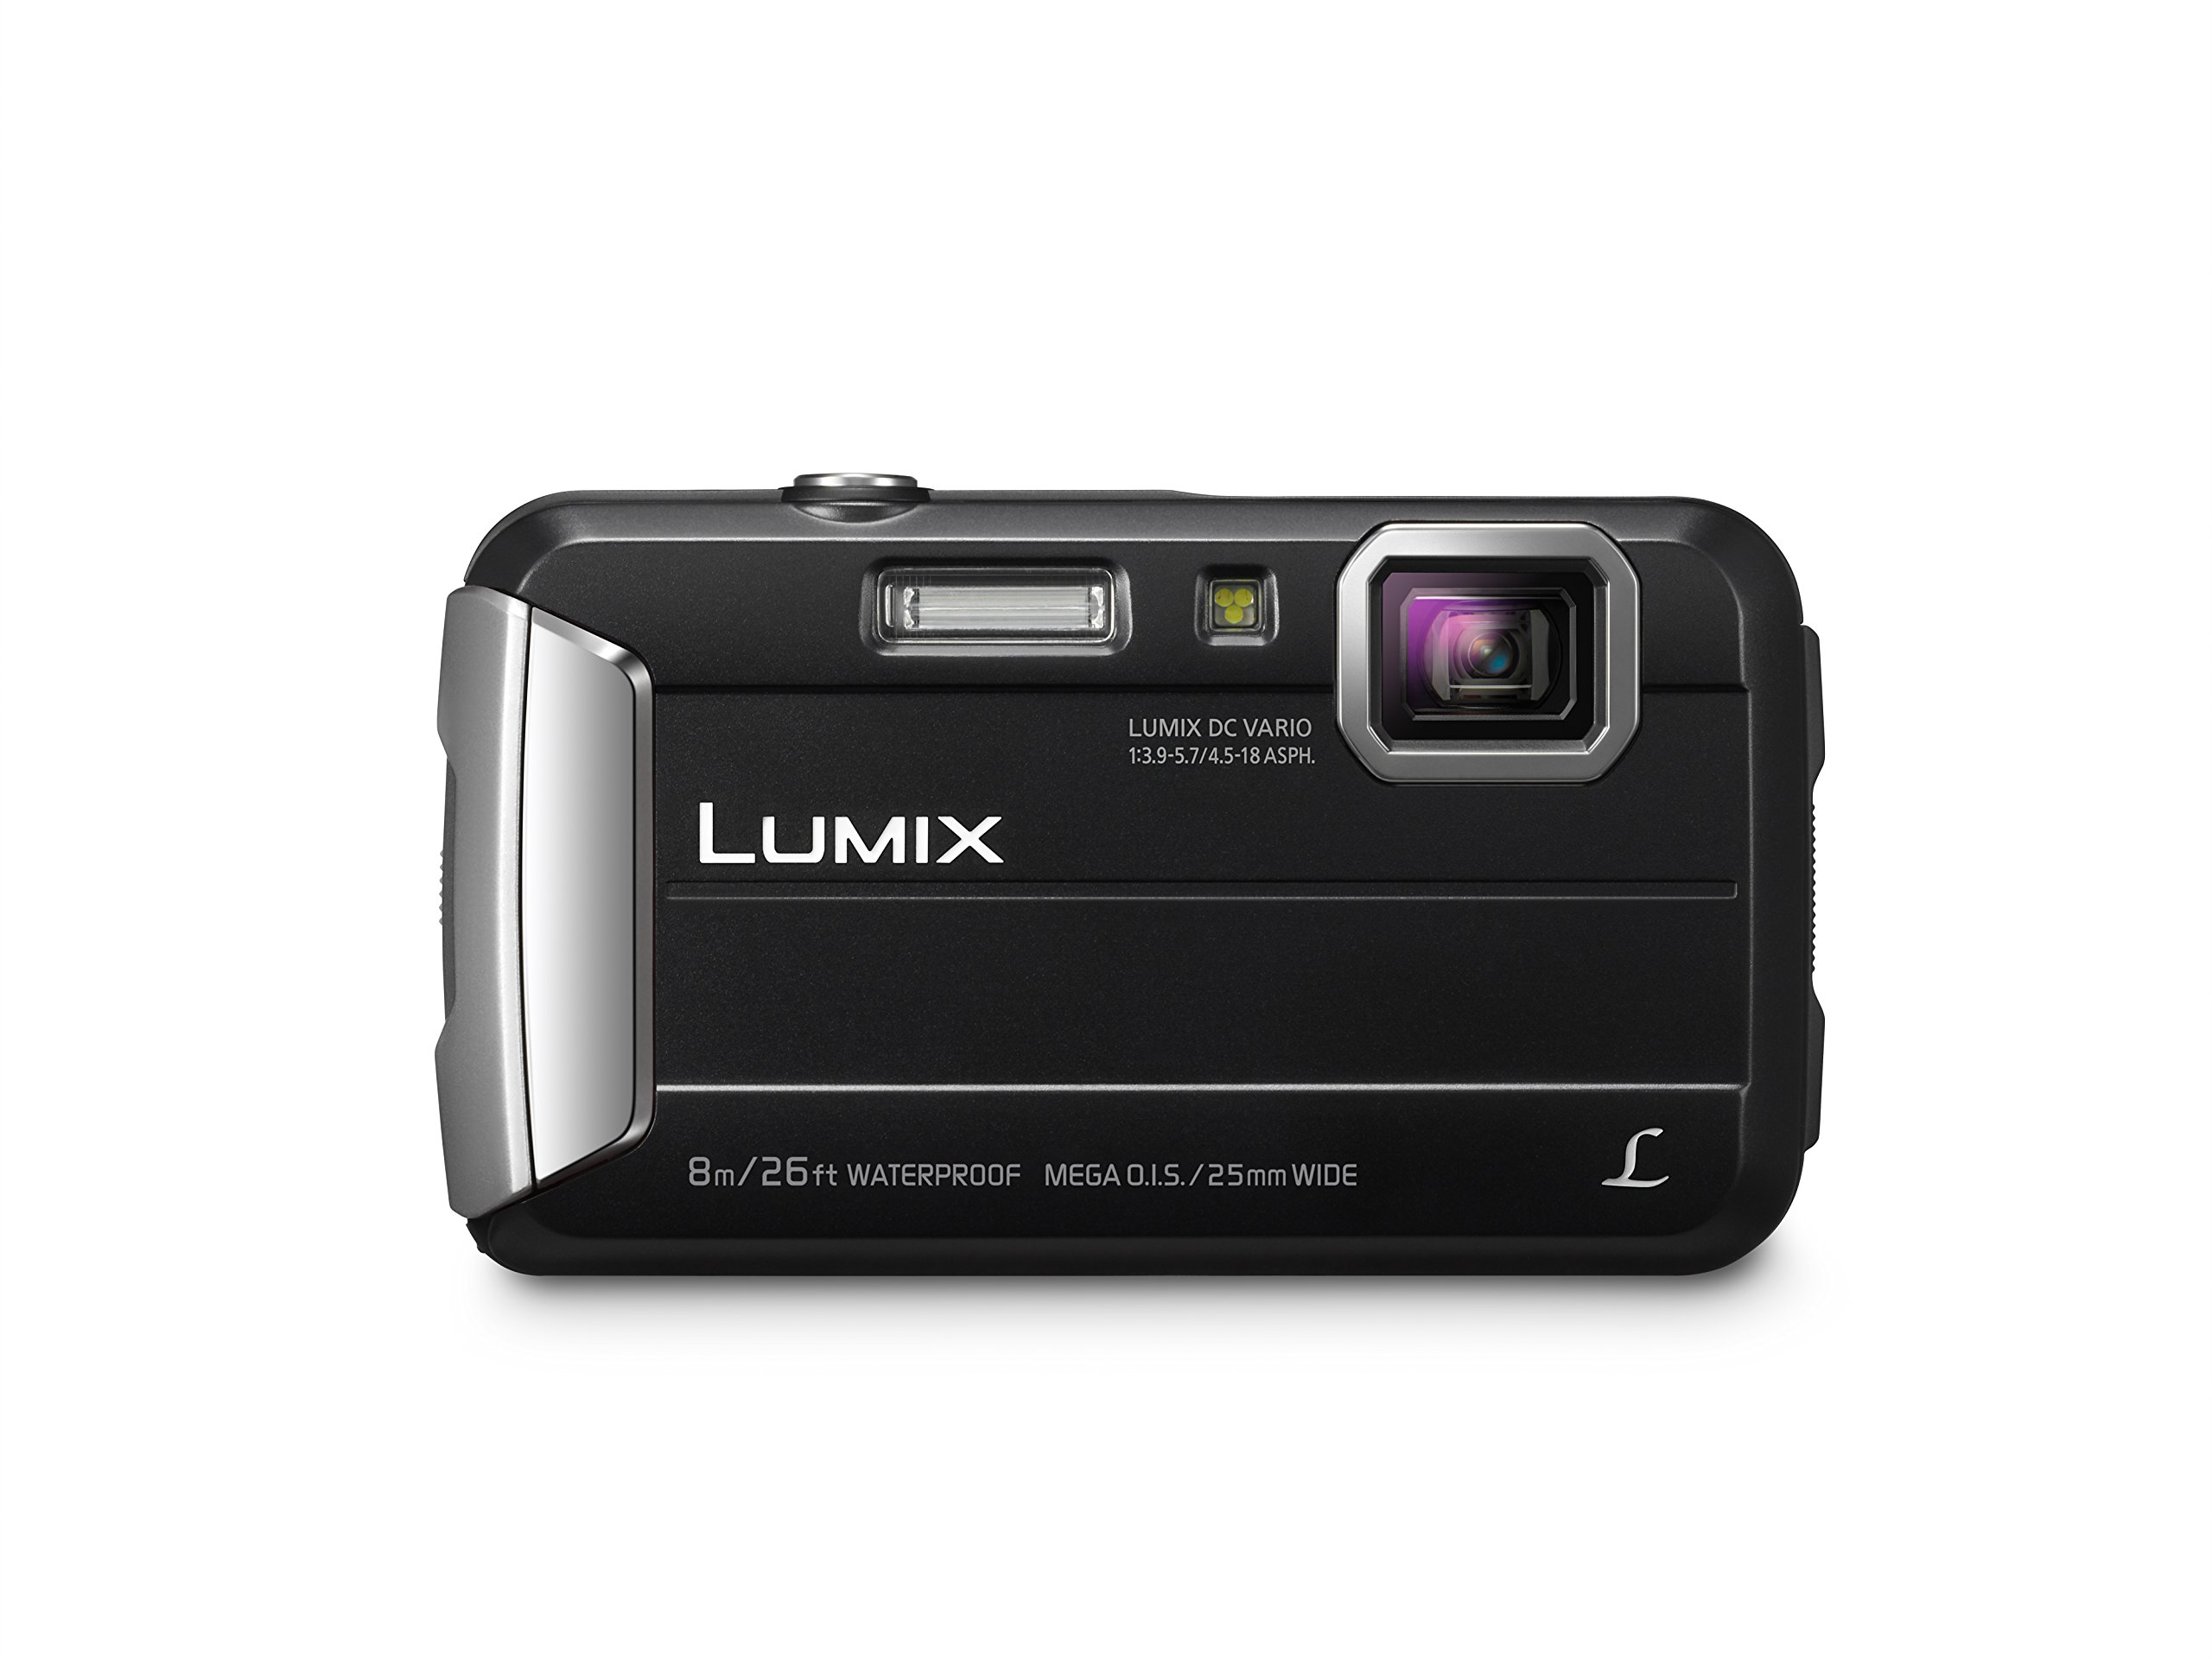 Panasonic DMC-TS30K LUMIX Active Lifestyle Tough Camera (Black) by Panasonic